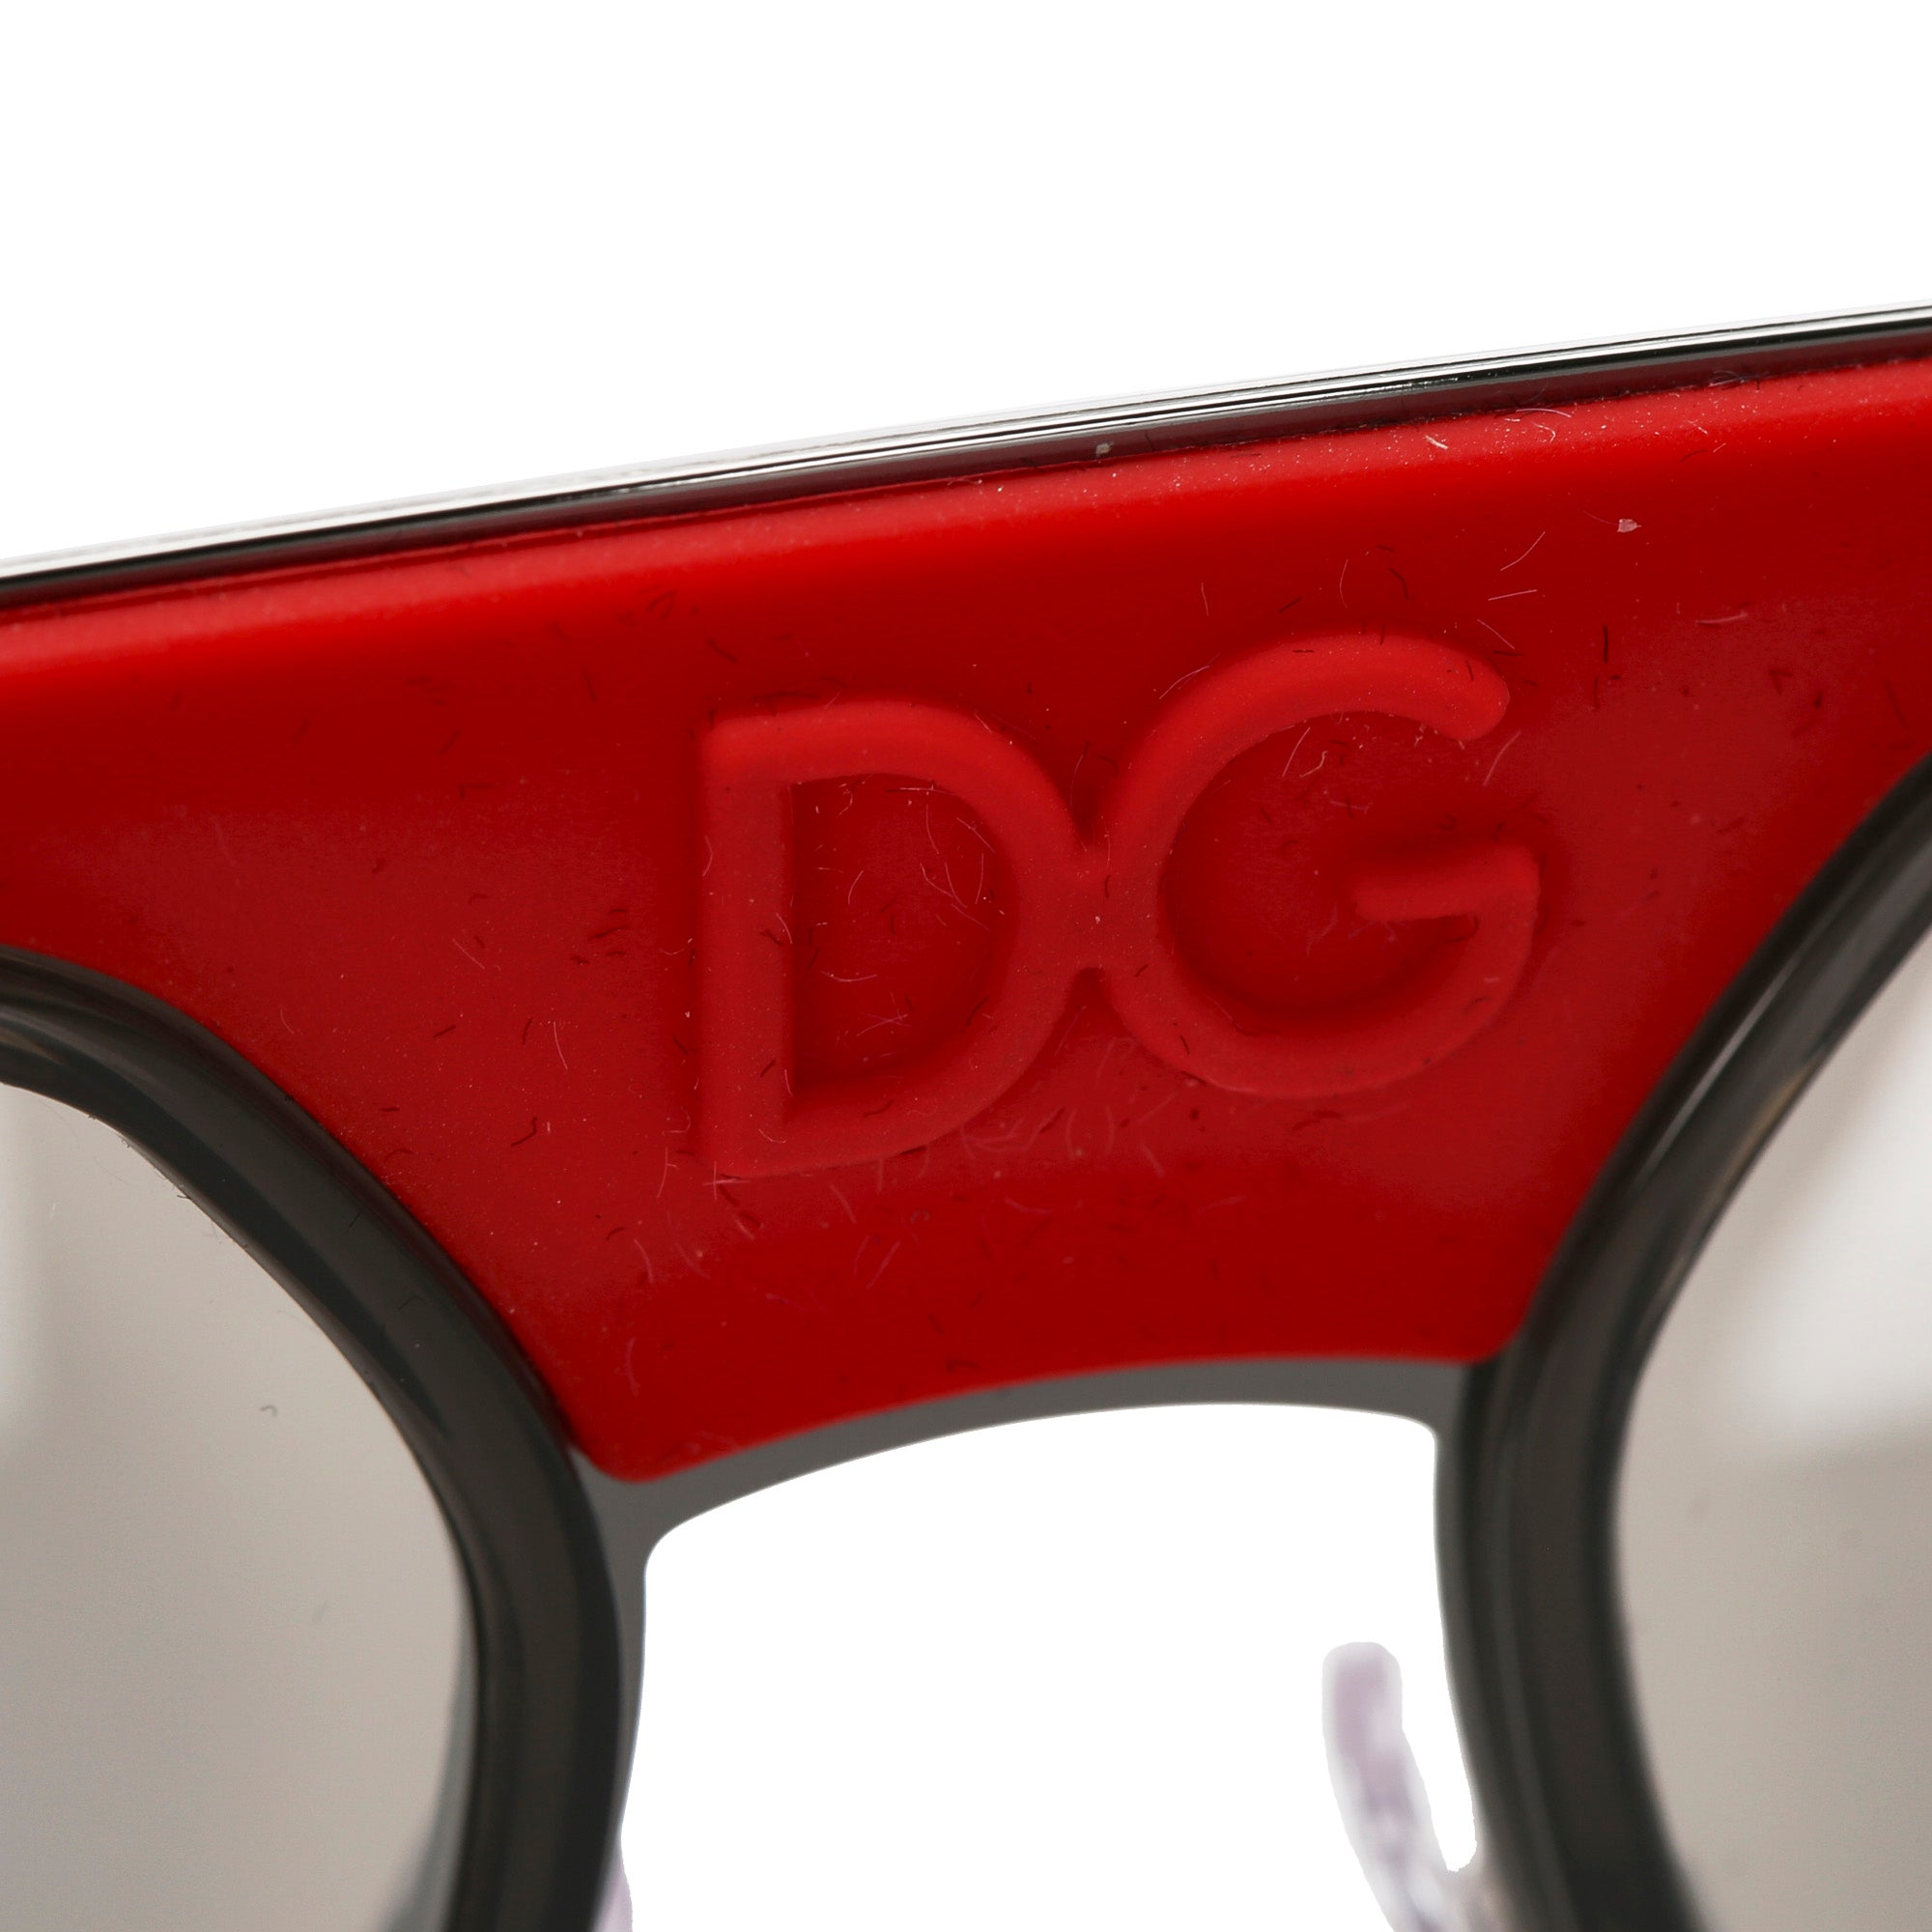 Dolce&Gabbana Black Round Mirror Sunglasses